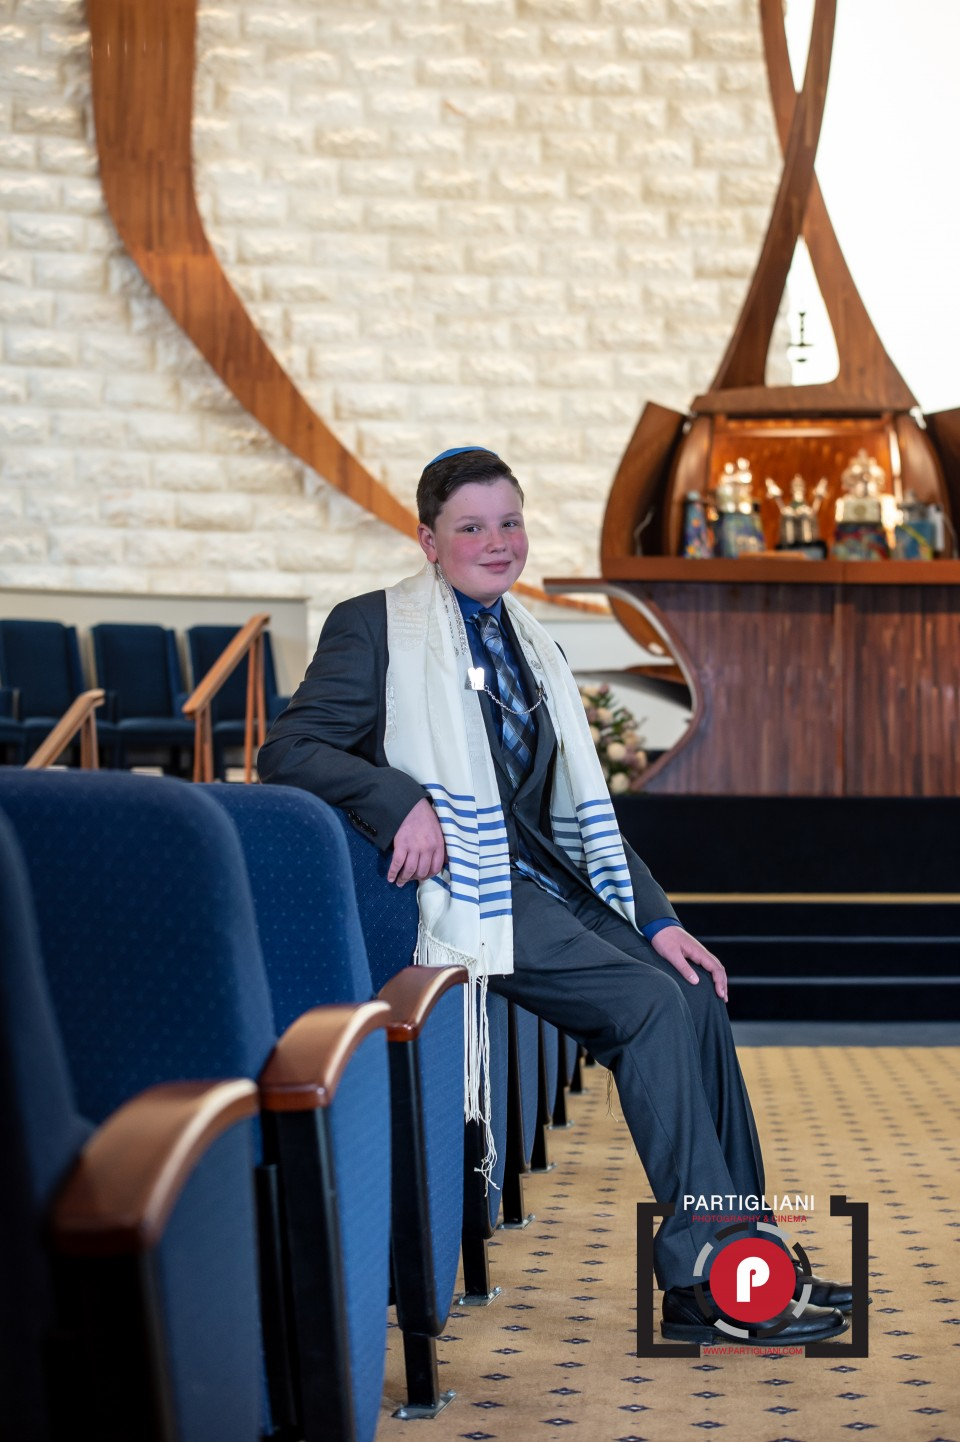 TEMPLE BETH EL, PARTIGLIANI PHOTOGRAPHY- BEN'S BAR MITZVAH-59